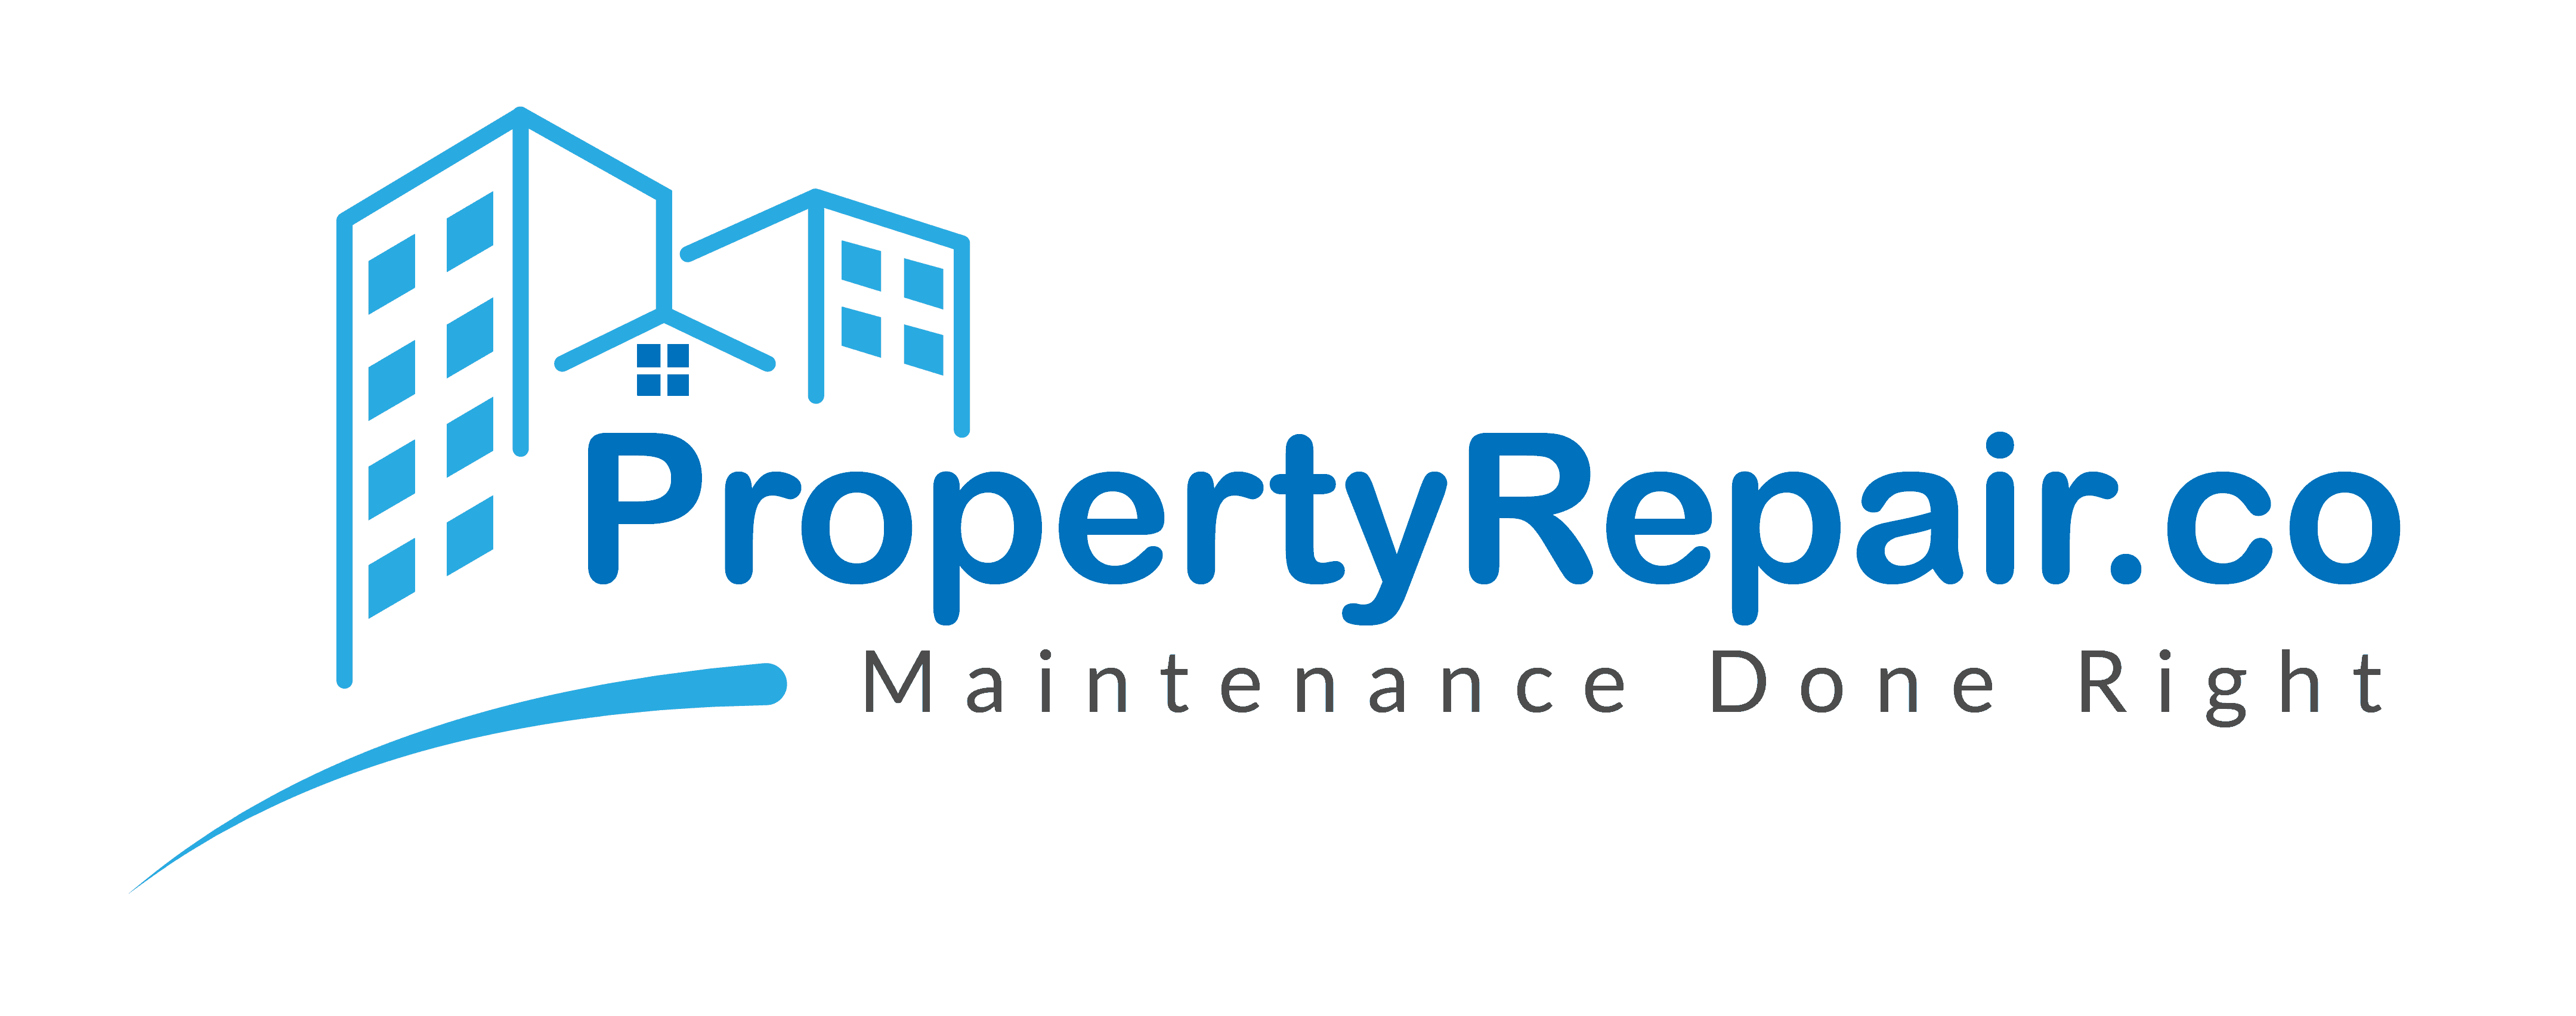 PropertyRepair.co